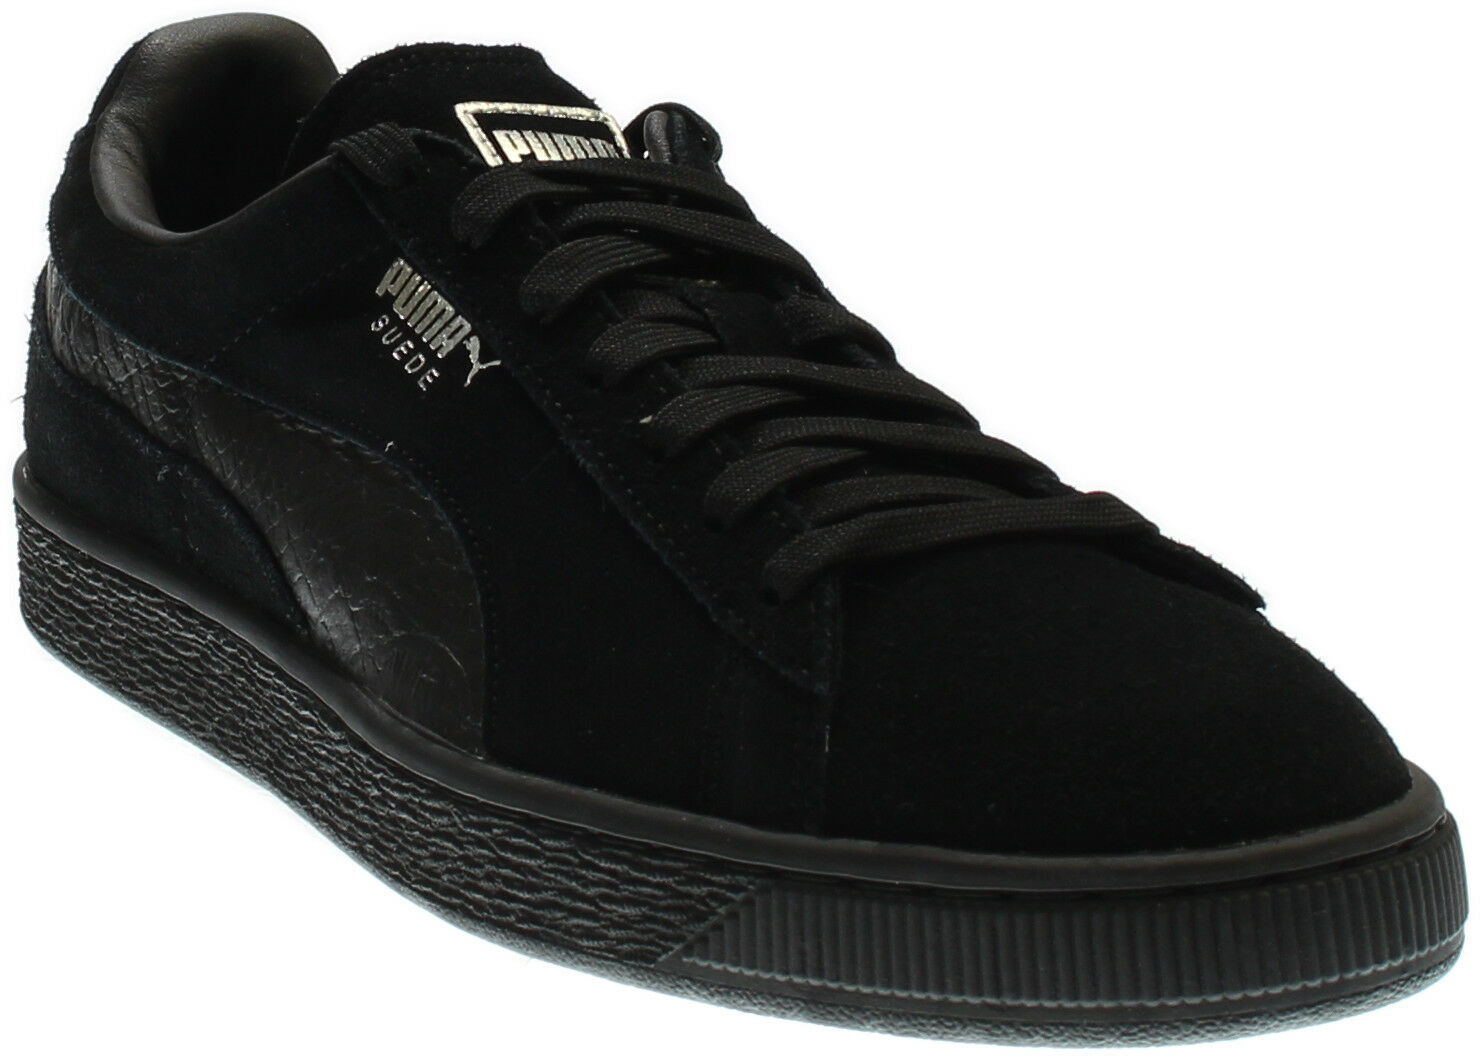 Puma SUEDE CLASSIC MONO REPTILE - Black - Mens The latest discount shoes for men and women